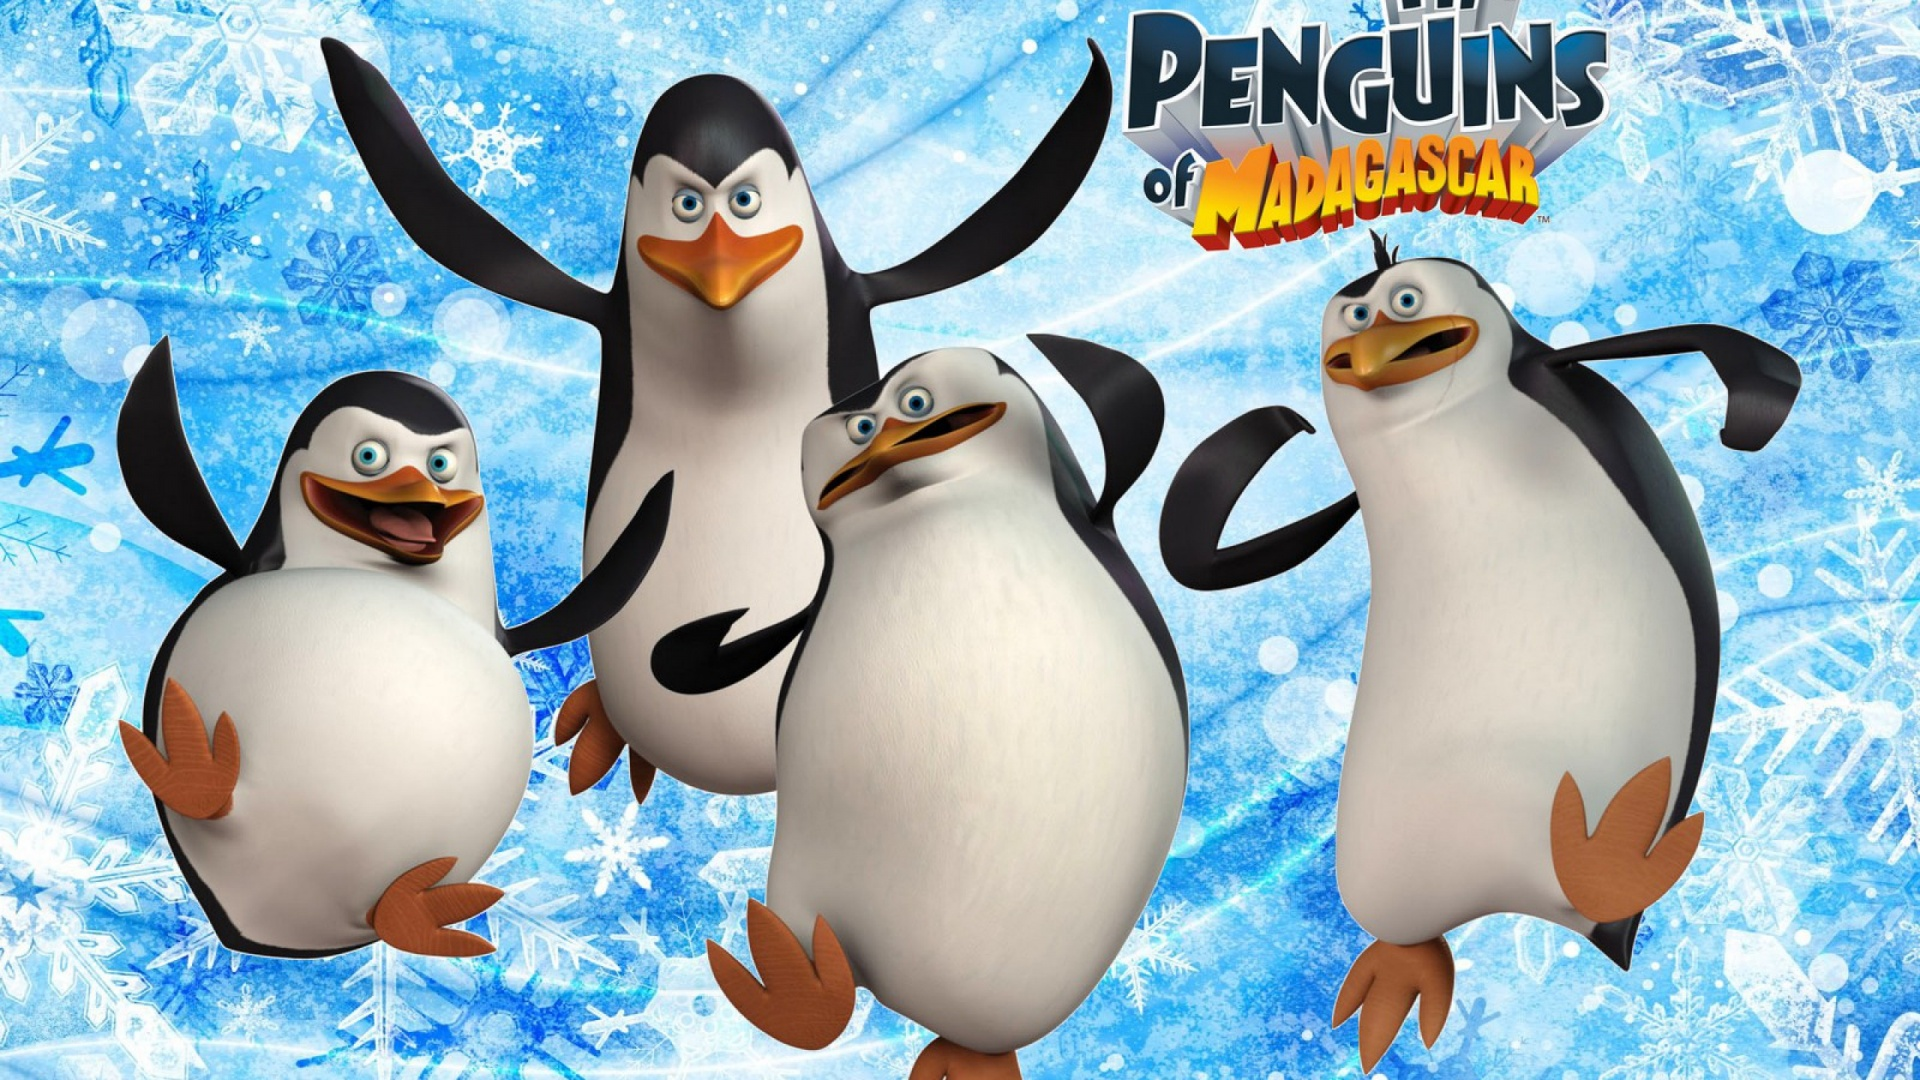 Penguins of Madagascar San Diego Comic Con 2014: All the Big Movie Panels You Need to Know About